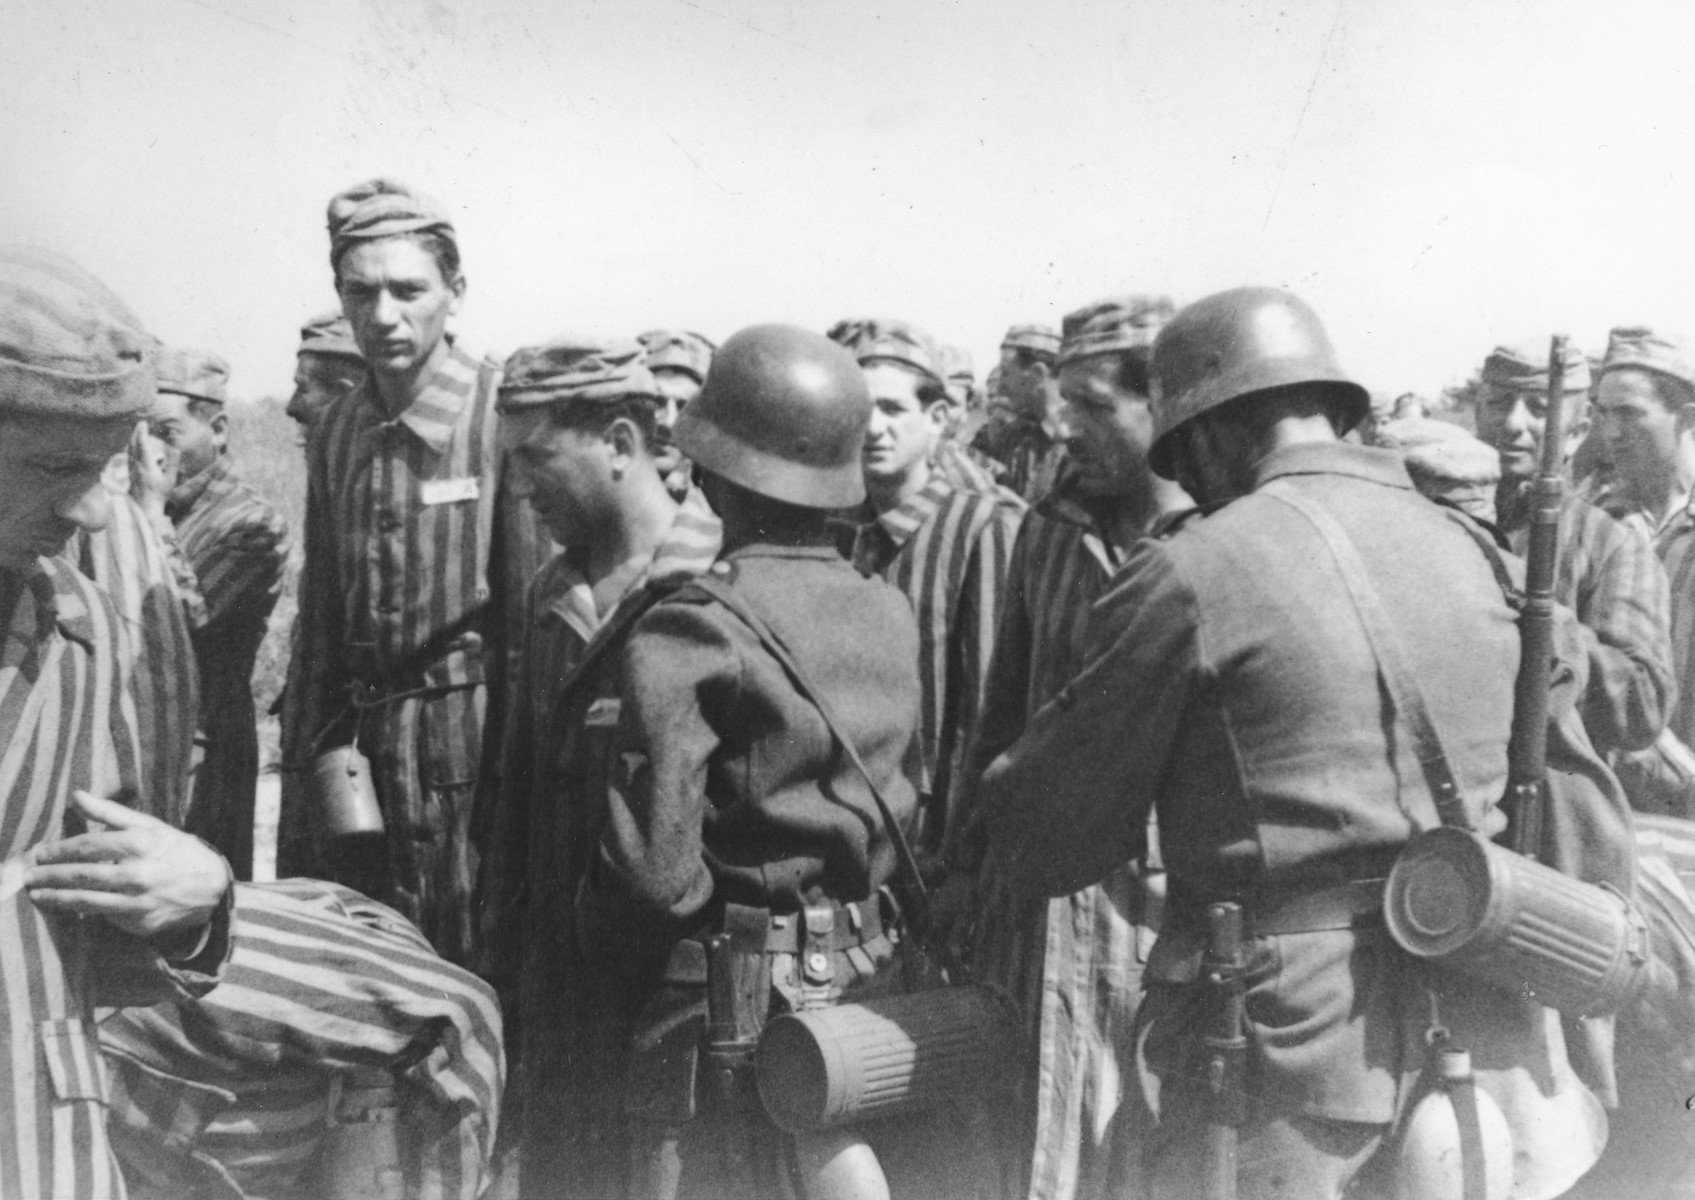 Newly liberated prisoners with German soldiers in either Mauthausen or the Gunskirchen sub-camp.  Pictured standing second from the left facing the camera is Tibor Weinberger.